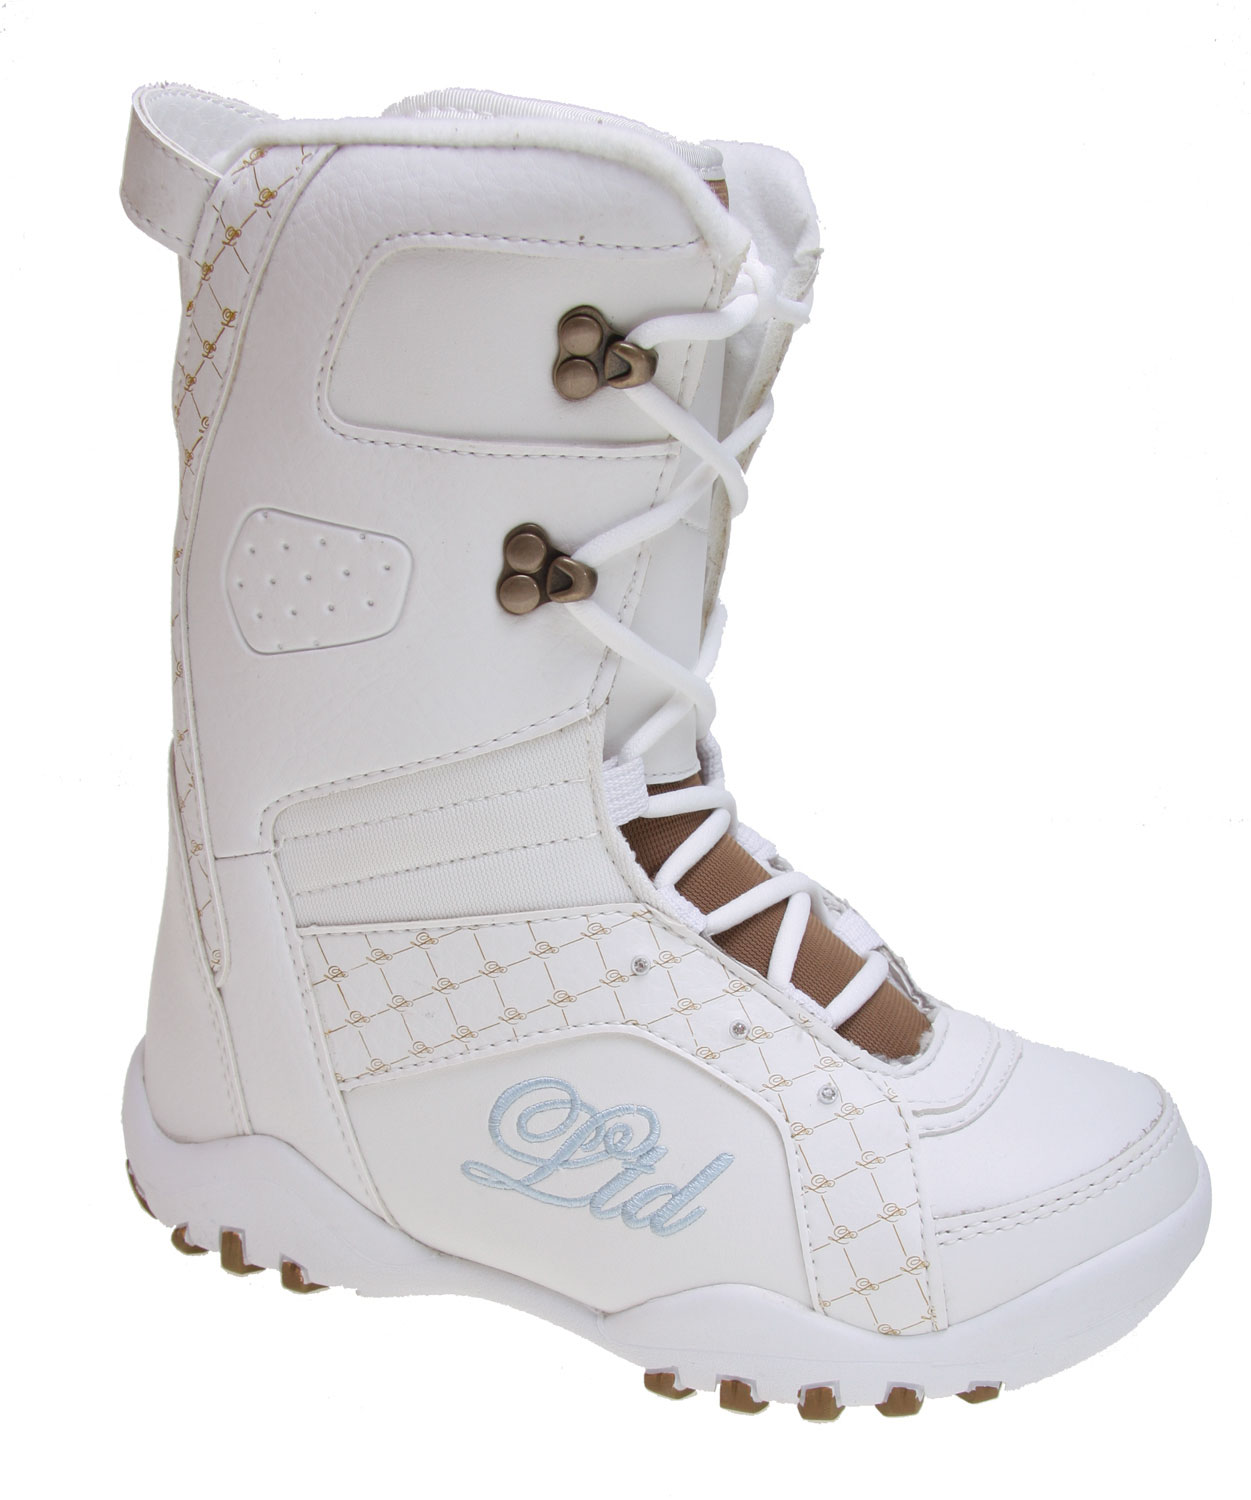 Snowboard Wearing the wrong kind of boot while on the snow this season will hinder your performance. Go well prepared in boot designed to aid you from the time you lace them to sundown. The LTD Stratus snowboard boots have the thick soled aggressive traction to keeping on your board longer and support your feet. The thick insulated interior with this waterproof boot is sure going to keep your feet warm and dry all day. The pull tab on the tongue and the soft-touch lacing help to secure your boots easier and faster. They look great and work great as well!Key Features of The LTD Stratus Youth Boy's Snowboard Boots: NEW Built in Liner System NEW Low Profile Dual Density Durable Soft Touch Lacing Tongue Gusset with Micro Injected Pull Tab Flex Zone Tongue NEW Upgraded Materials Soft Touch Laces - $59.95